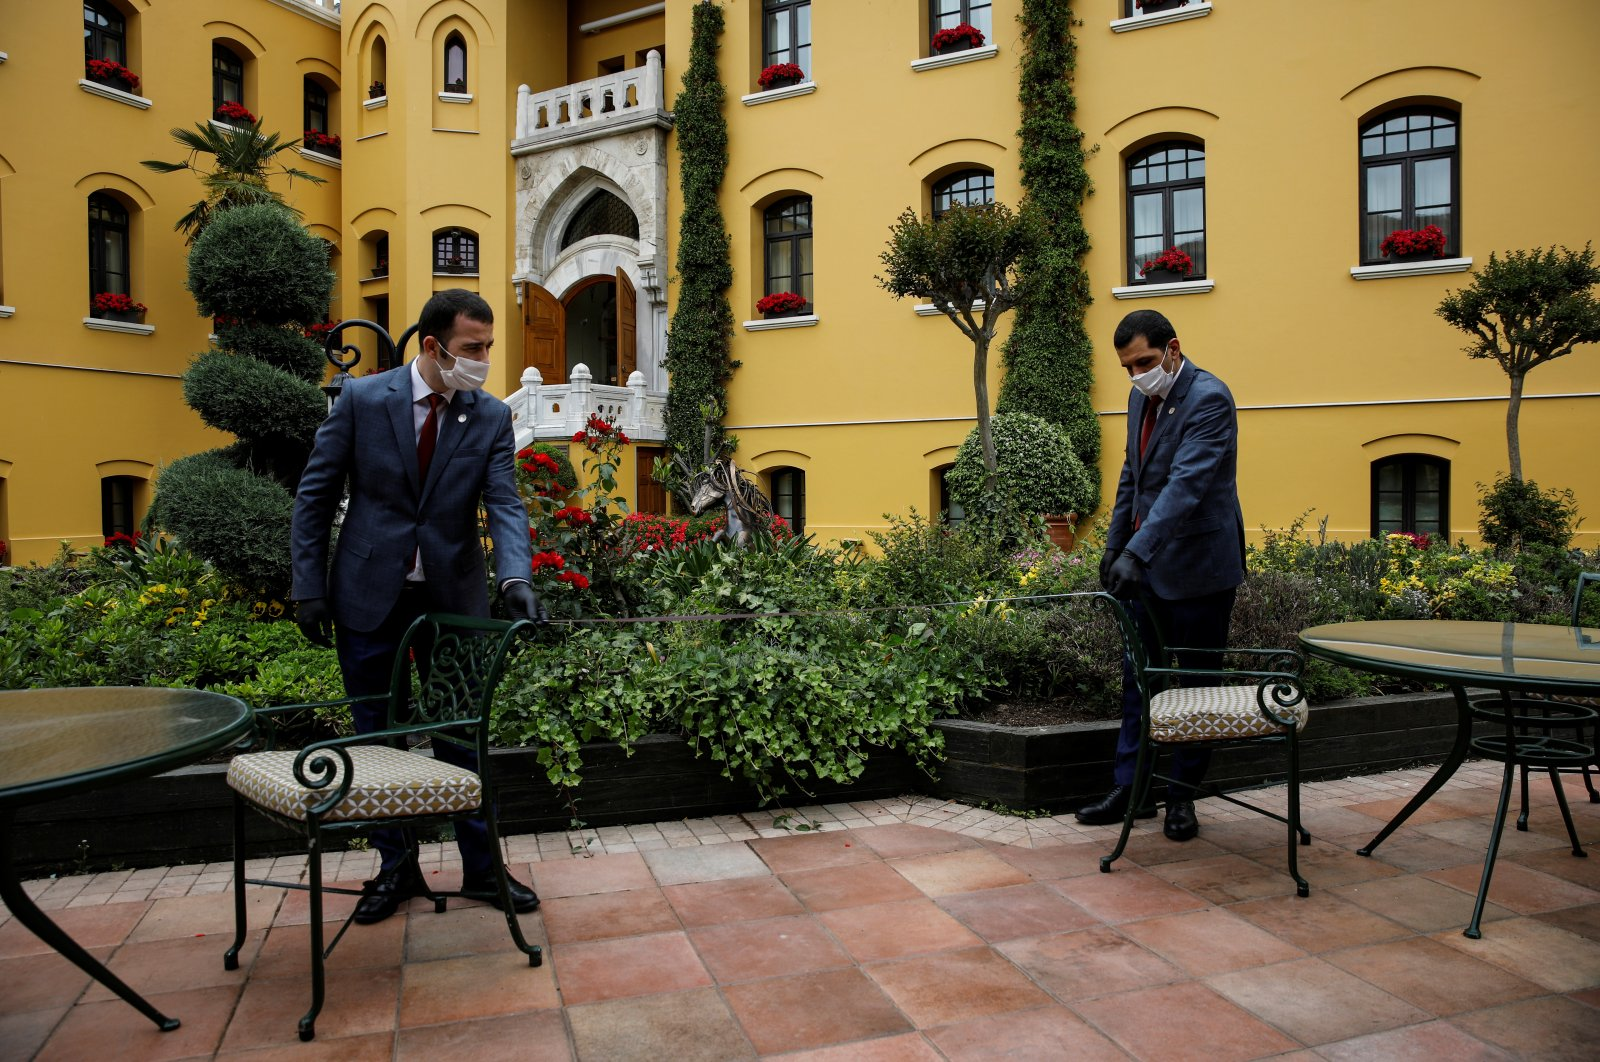 Four Seasons Sultanahmet Hotel staff members measure the distance between tables and chairs as part of COVID-19 measures in Istanbul, May 21, 2020. (Reuters Photo)